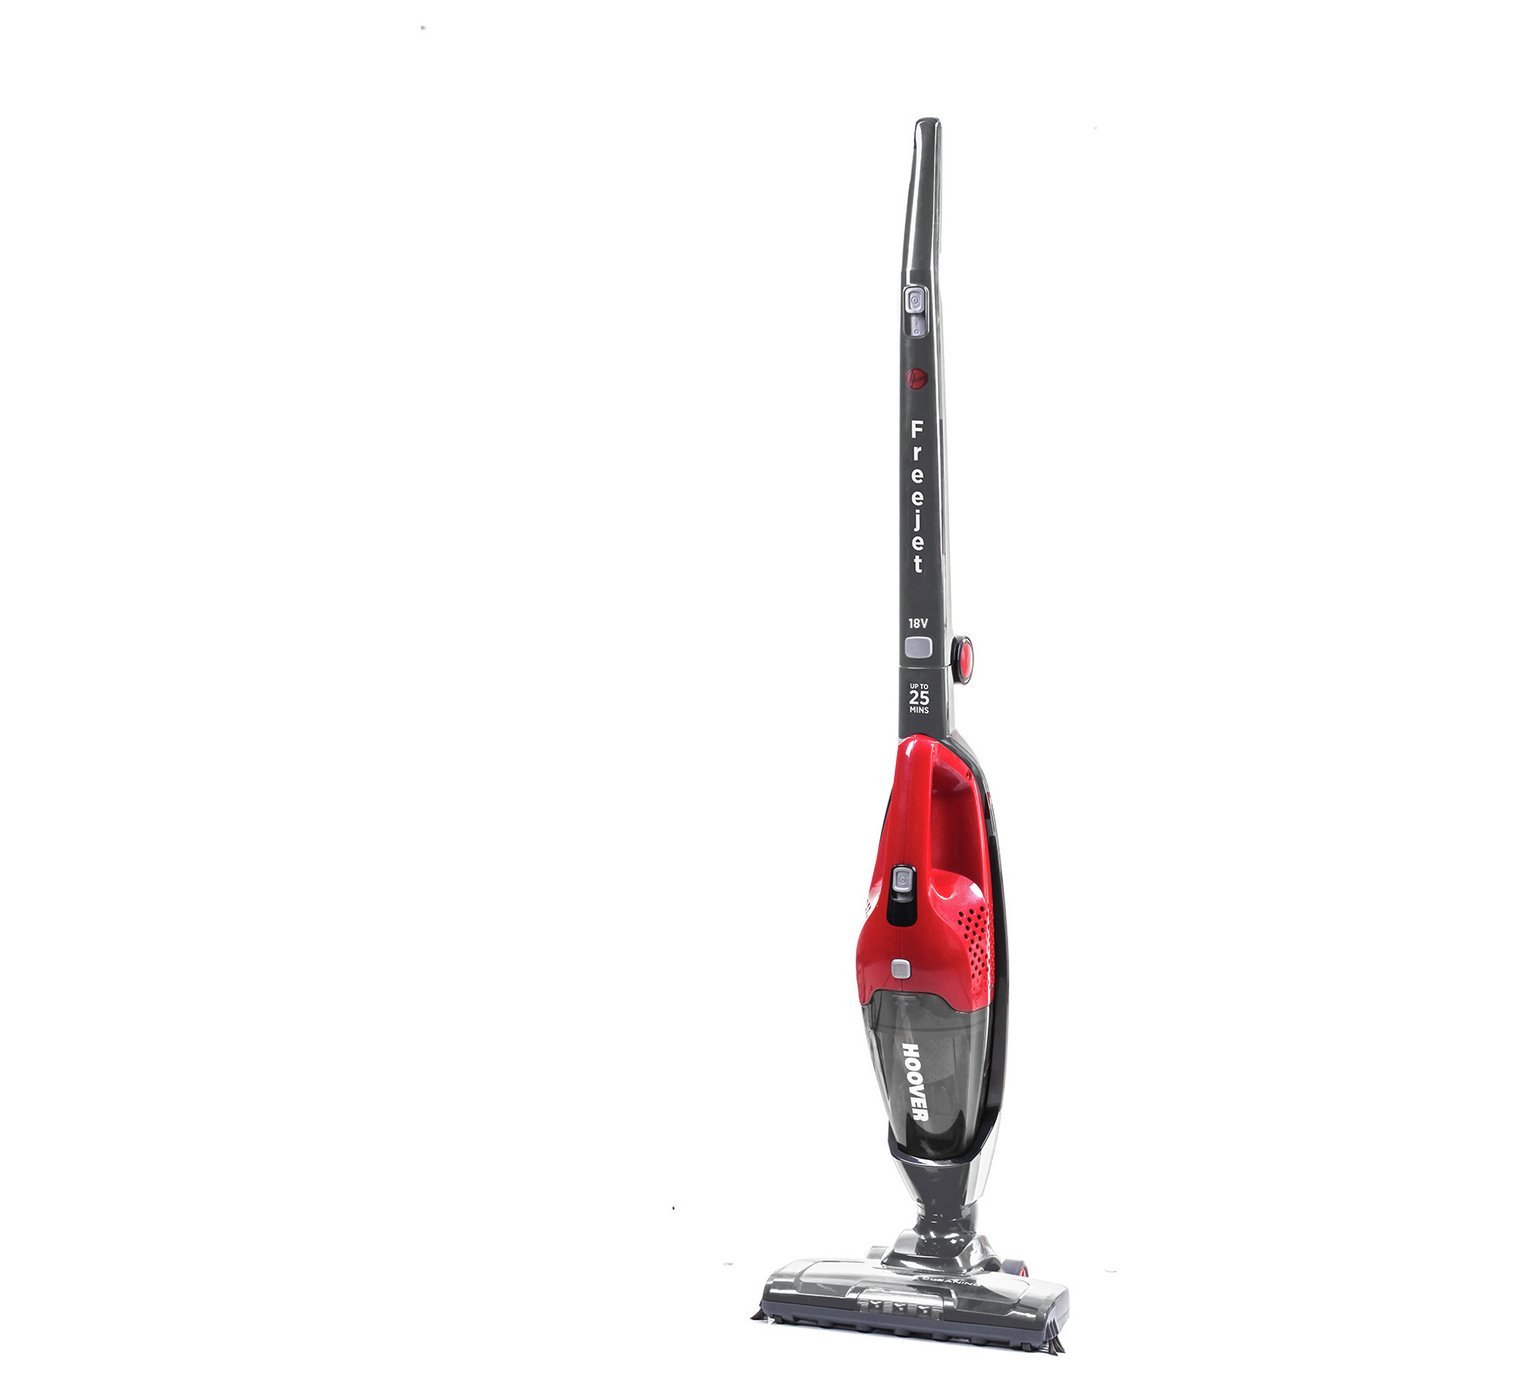 Hoover FM18GFJ Cordless Freejet 2 in 1 Vacuum Cleaner by Hoover 854/8320